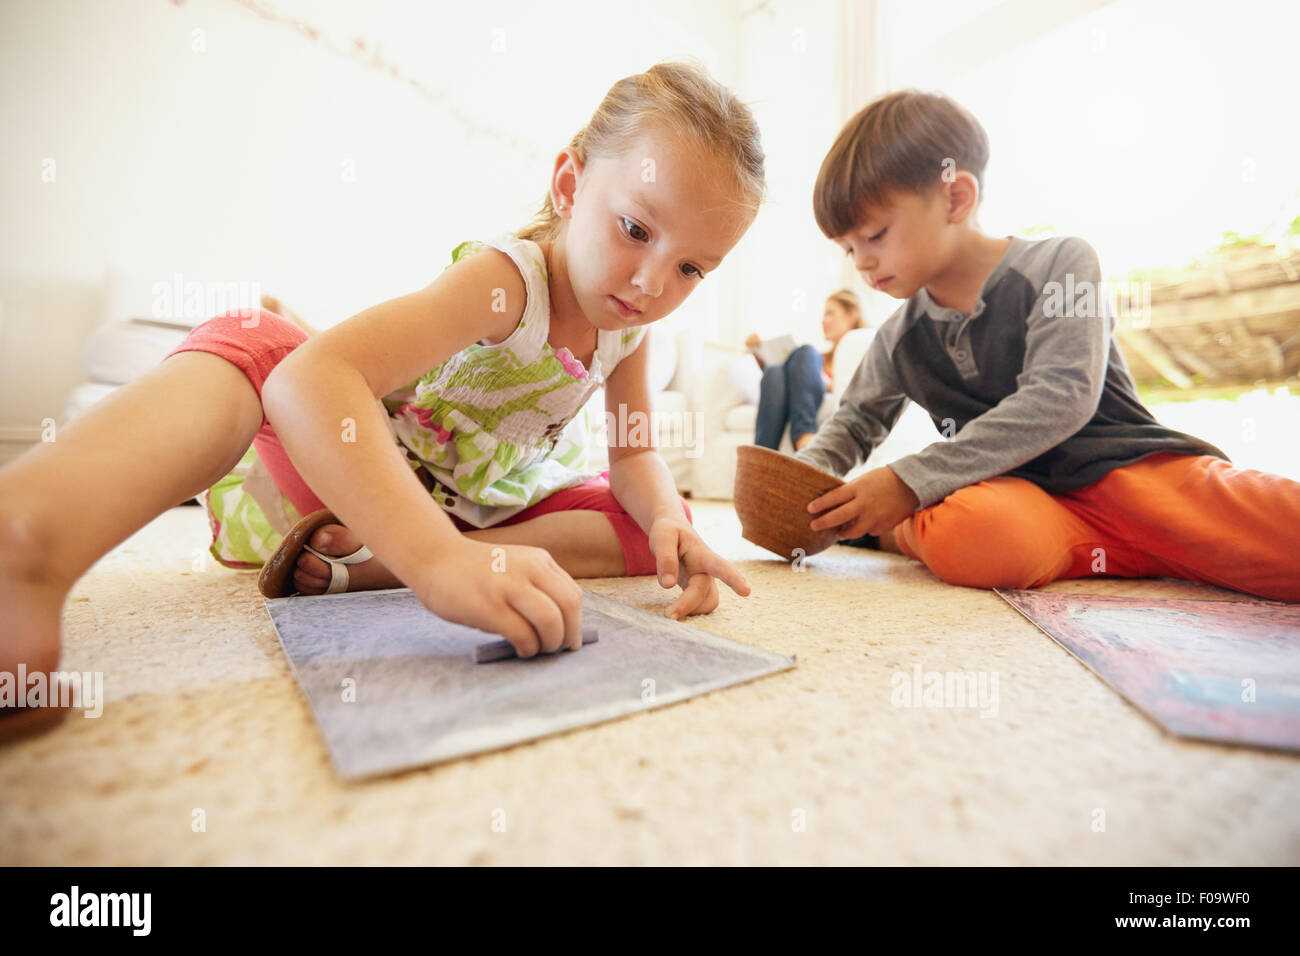 Little boy and girl coloring pictures with chalk colors while sitting on floor in living room at home. - Stock Image